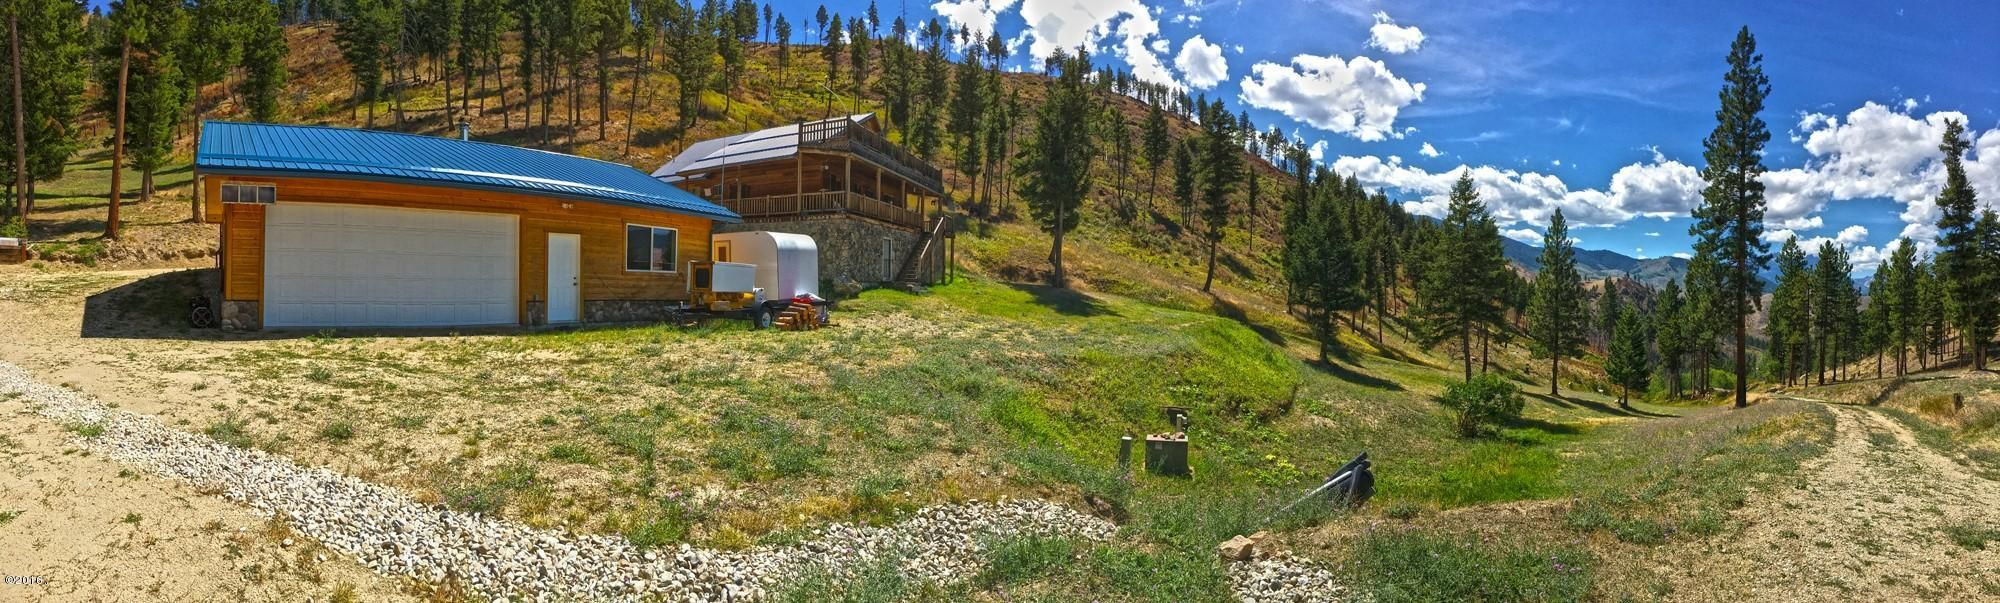 Additional photo for property listing at 116  Whiskey Gulch Road  Conner, Montana,59827 États-Unis